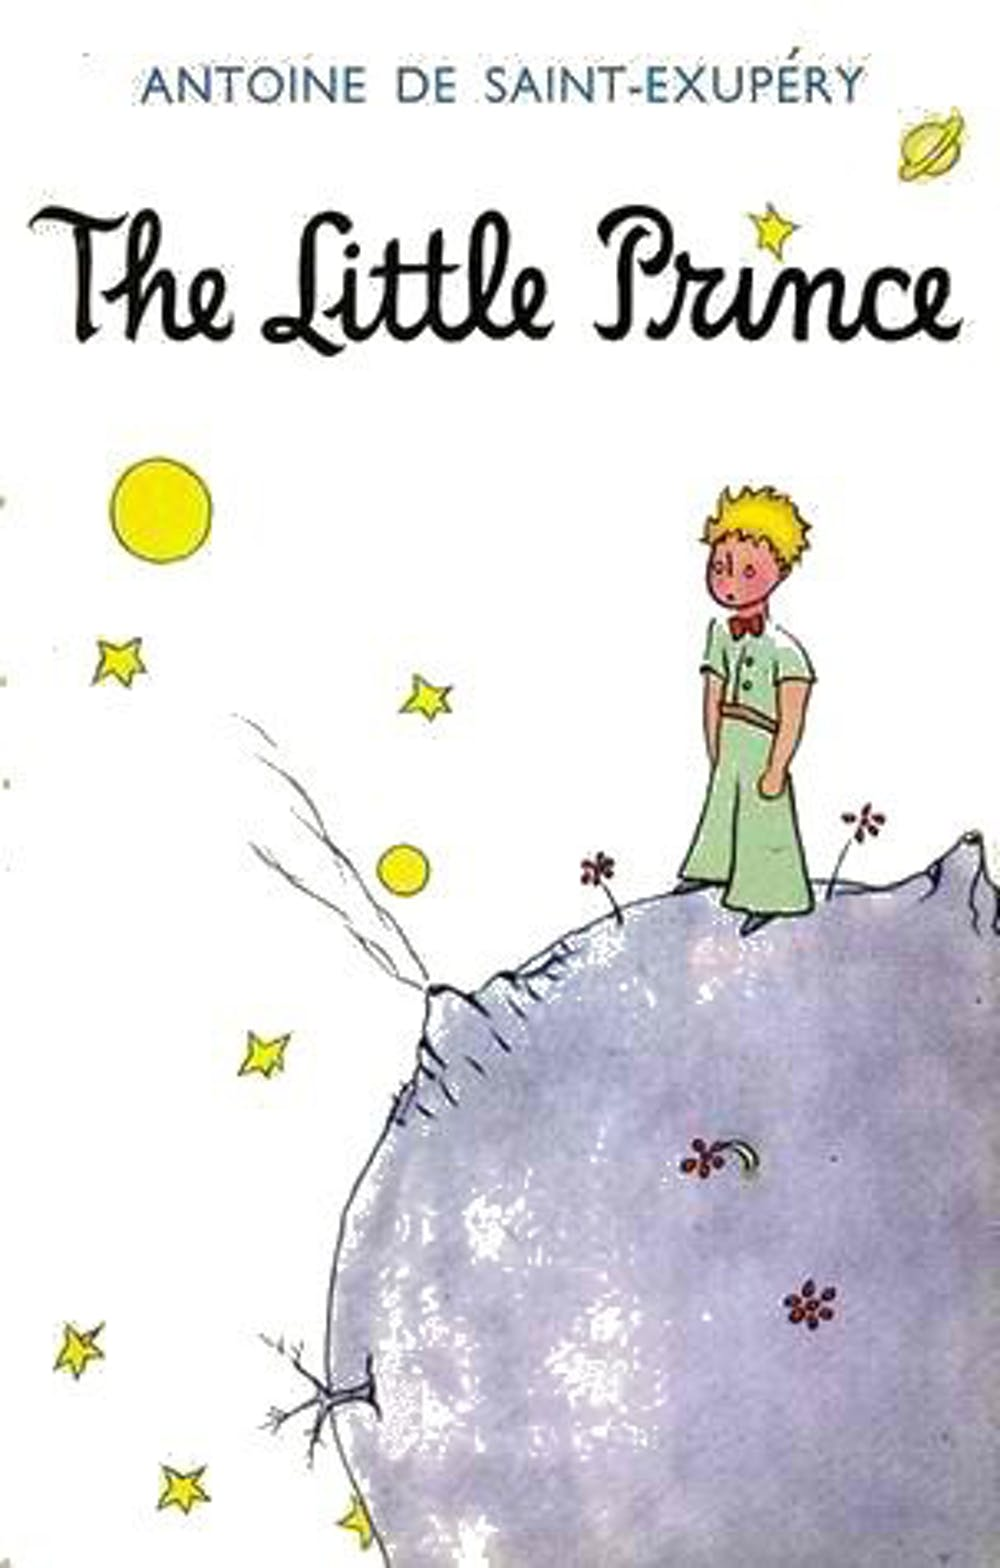 The Essential Is Invisible To The Eye The Wisdom Of The Little Prince In Lockdown